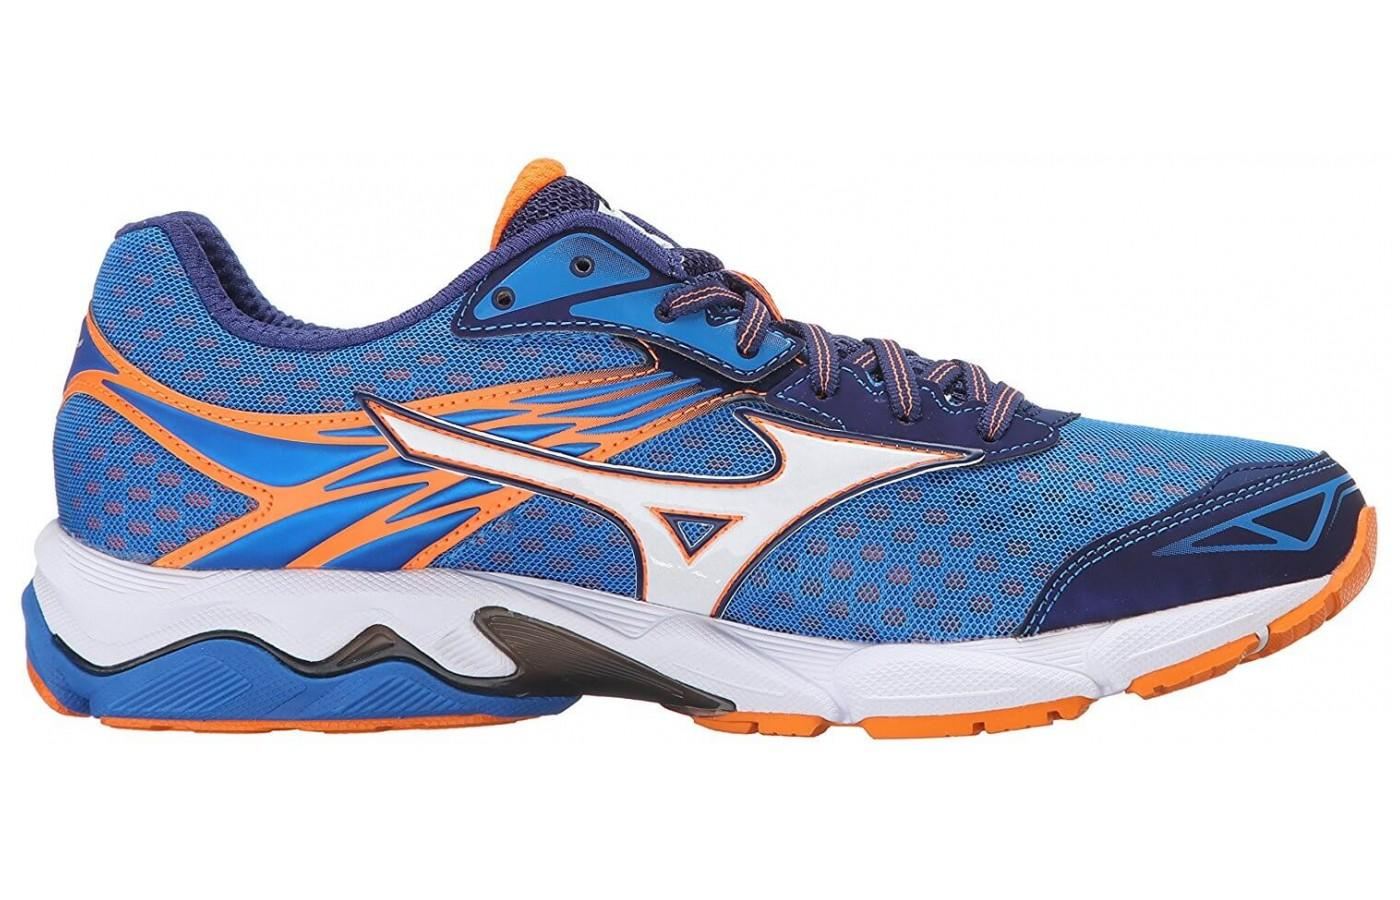 Runners love the bright color options